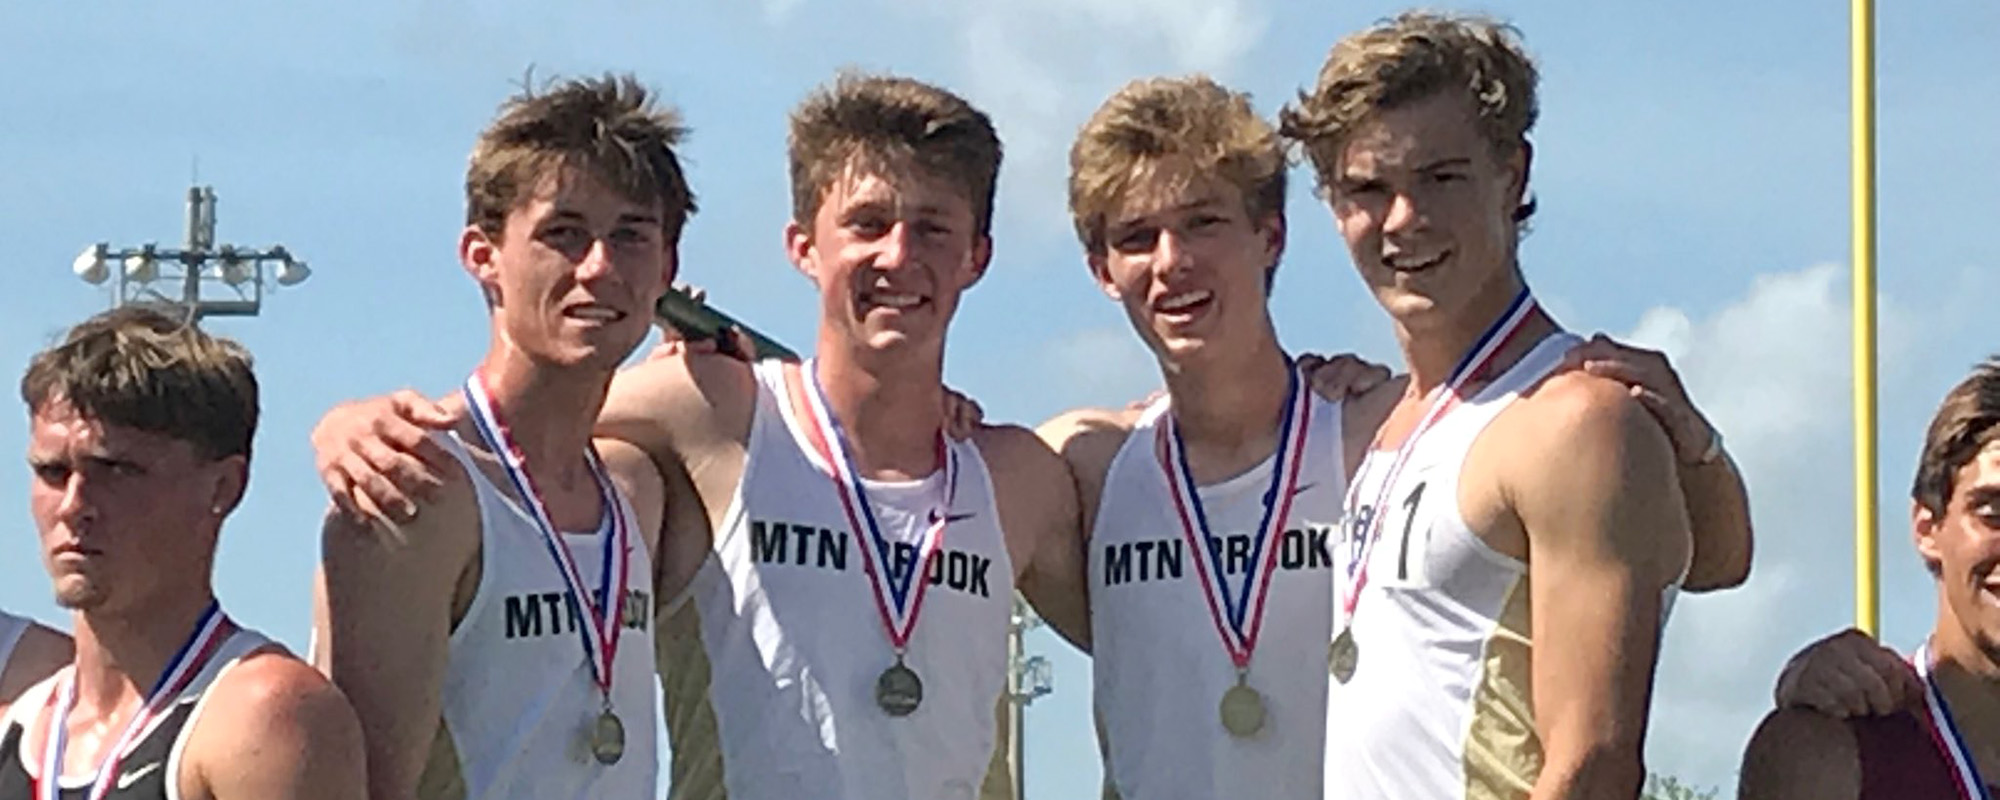 The Boys top performers list for 2018 holds many great performances as they prepare for the Ice Breaker Invite.